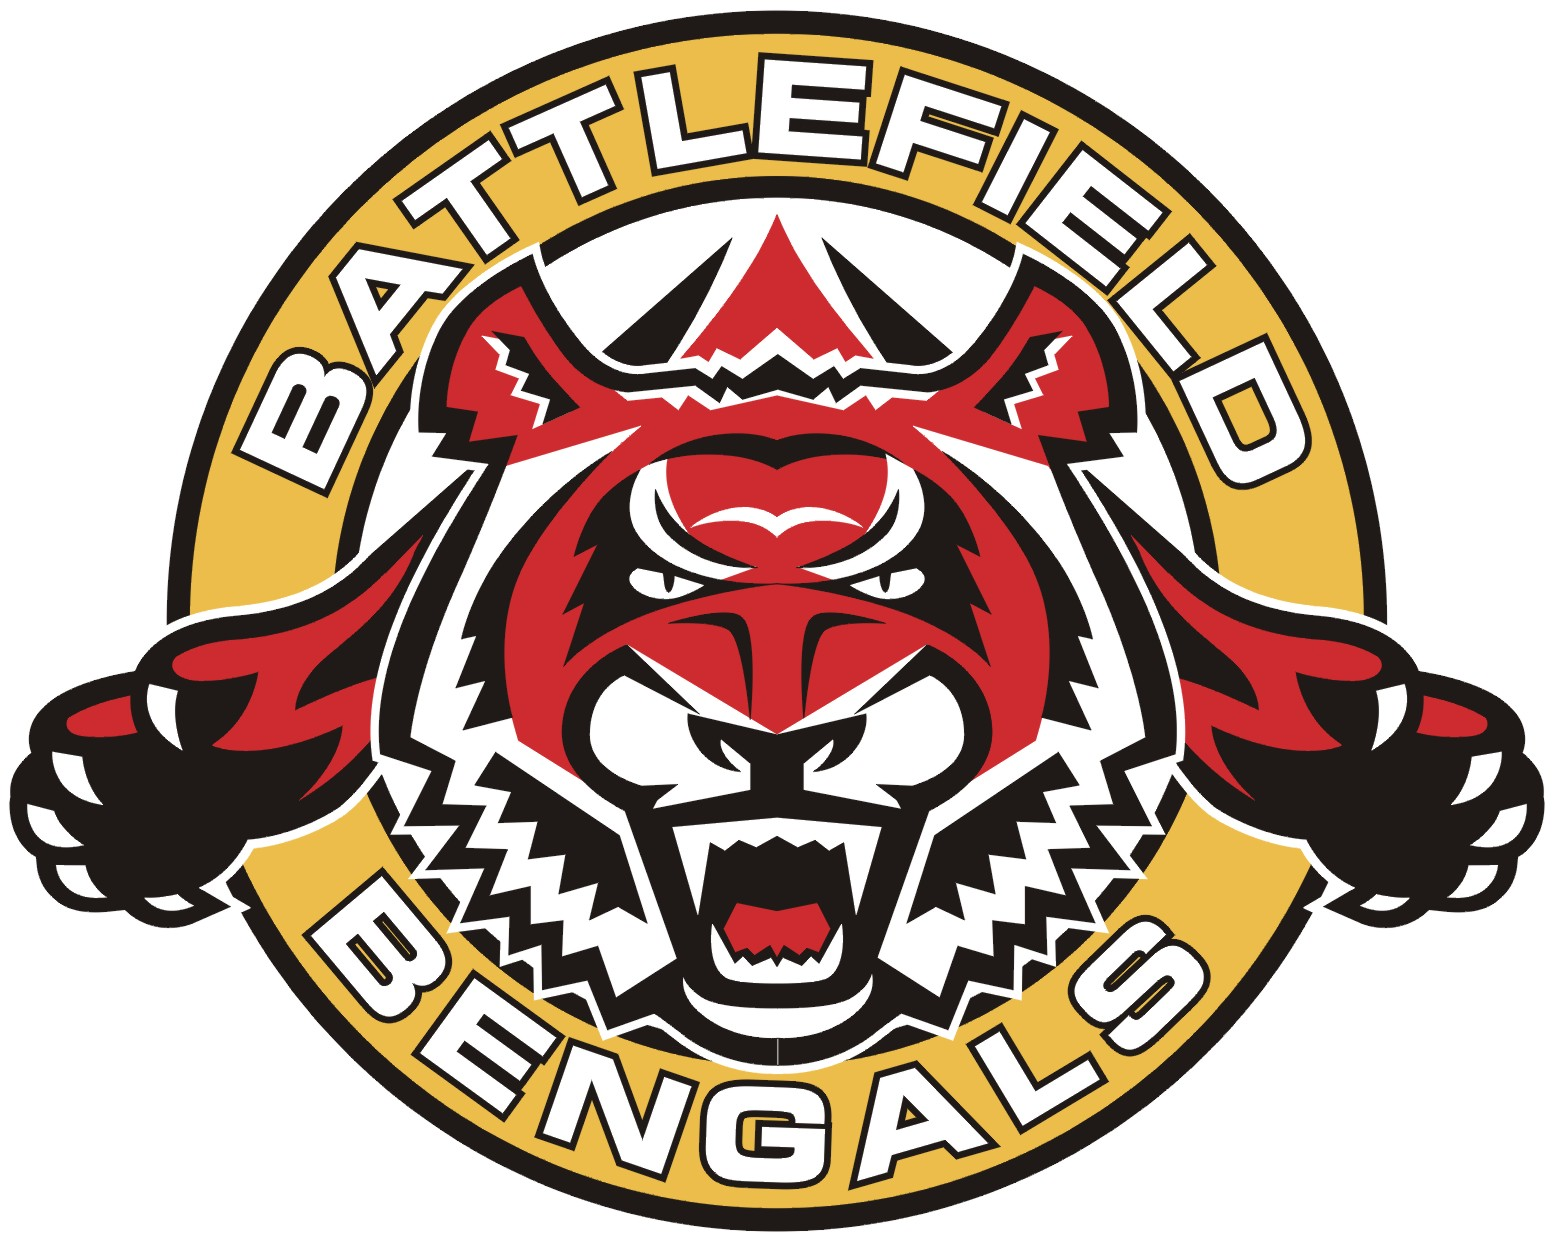 Battlefield Sports & Entertainment